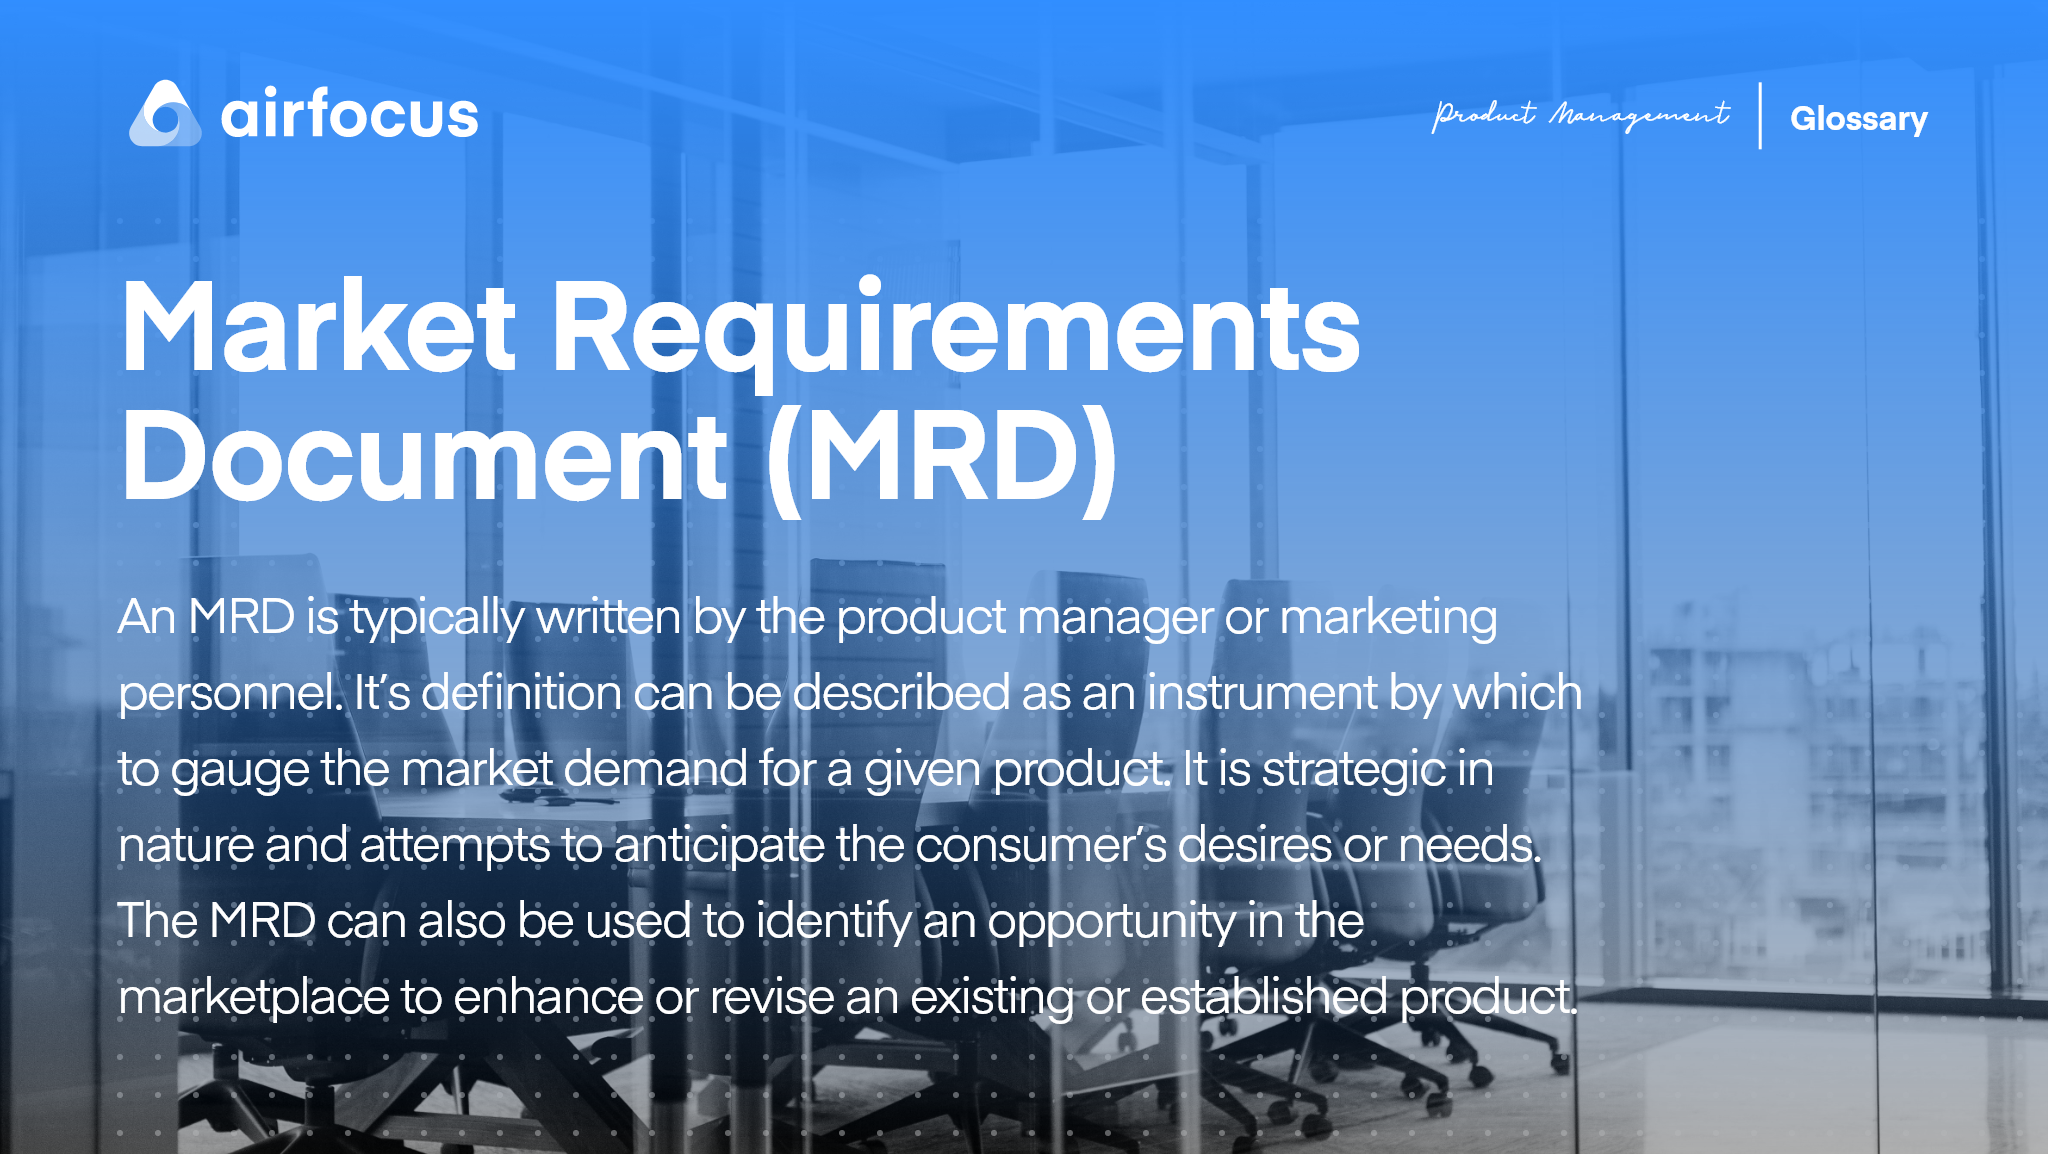 What is a Market Requirements Document (MRD)?